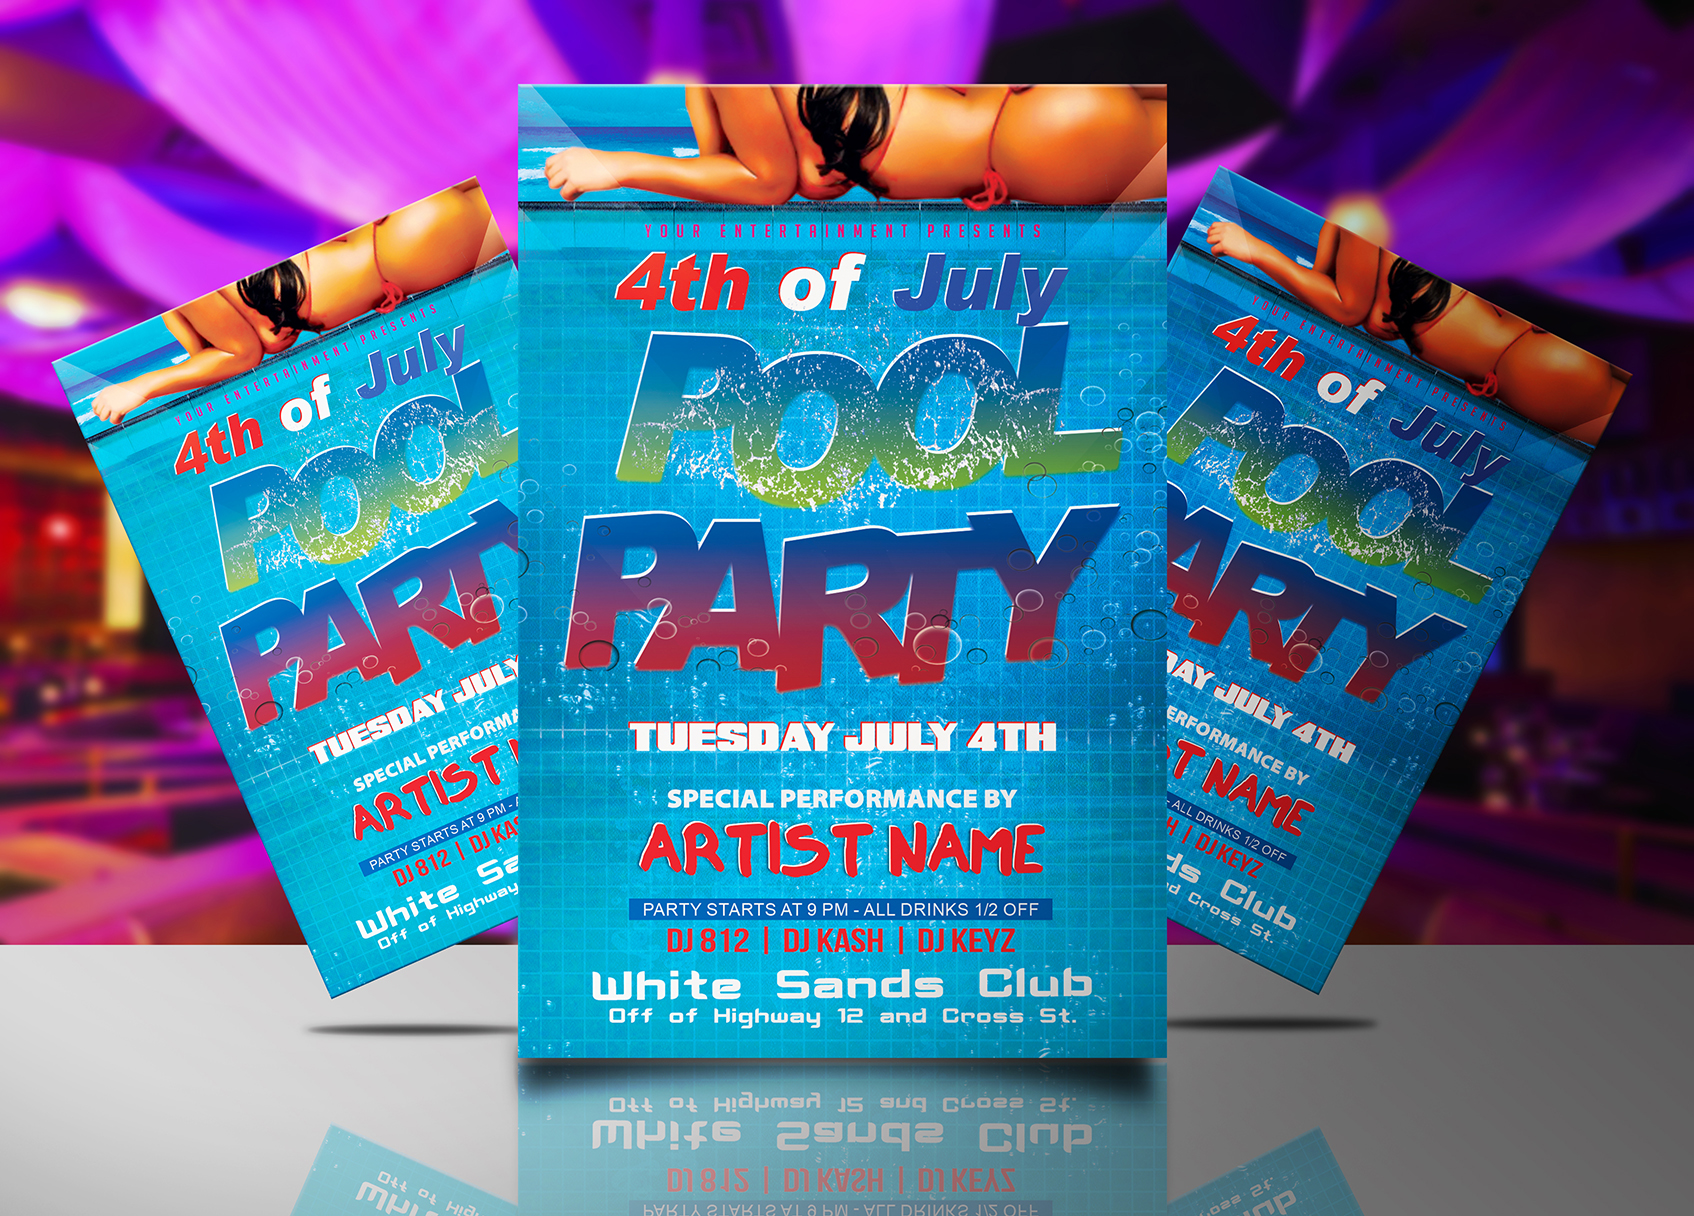 4th of July Pool Party Flyer Template | Streetz Myestro Beats